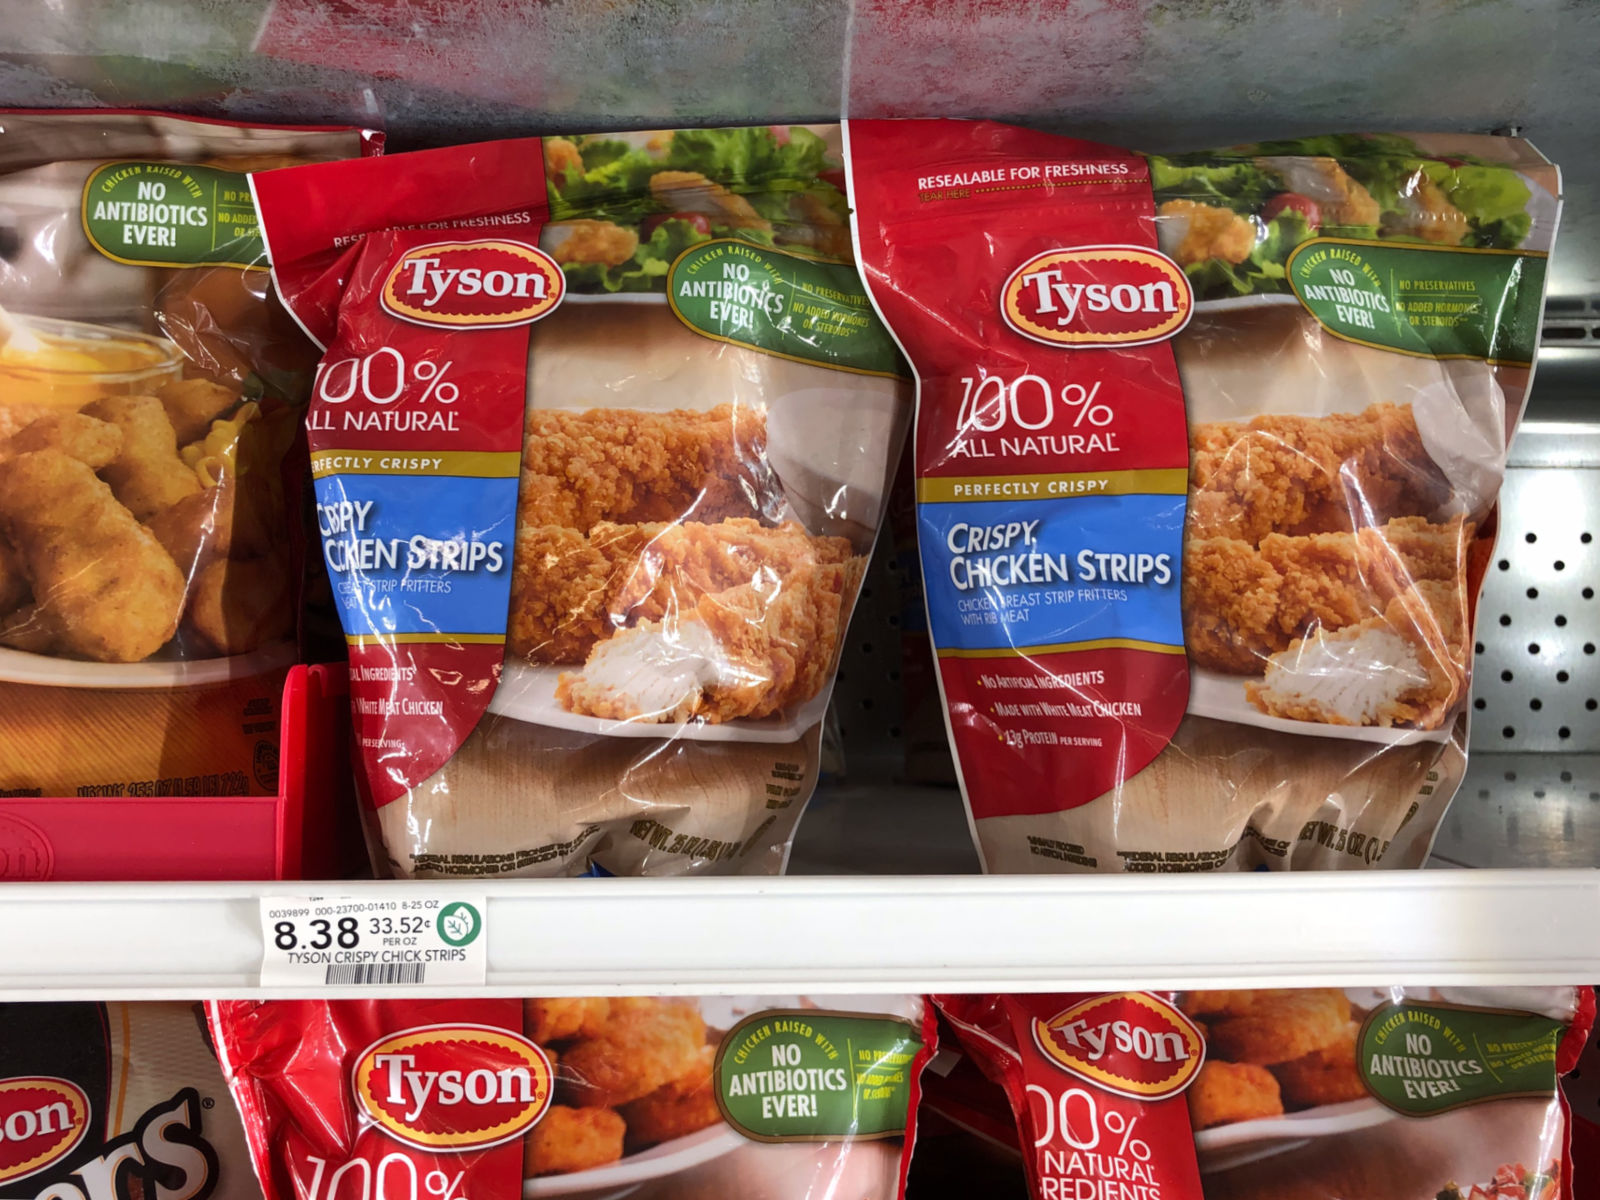 Look To Tyson® For Delicious Products For Back To School - Find Your Family's Favorites At Publix on I Heart Publix 2